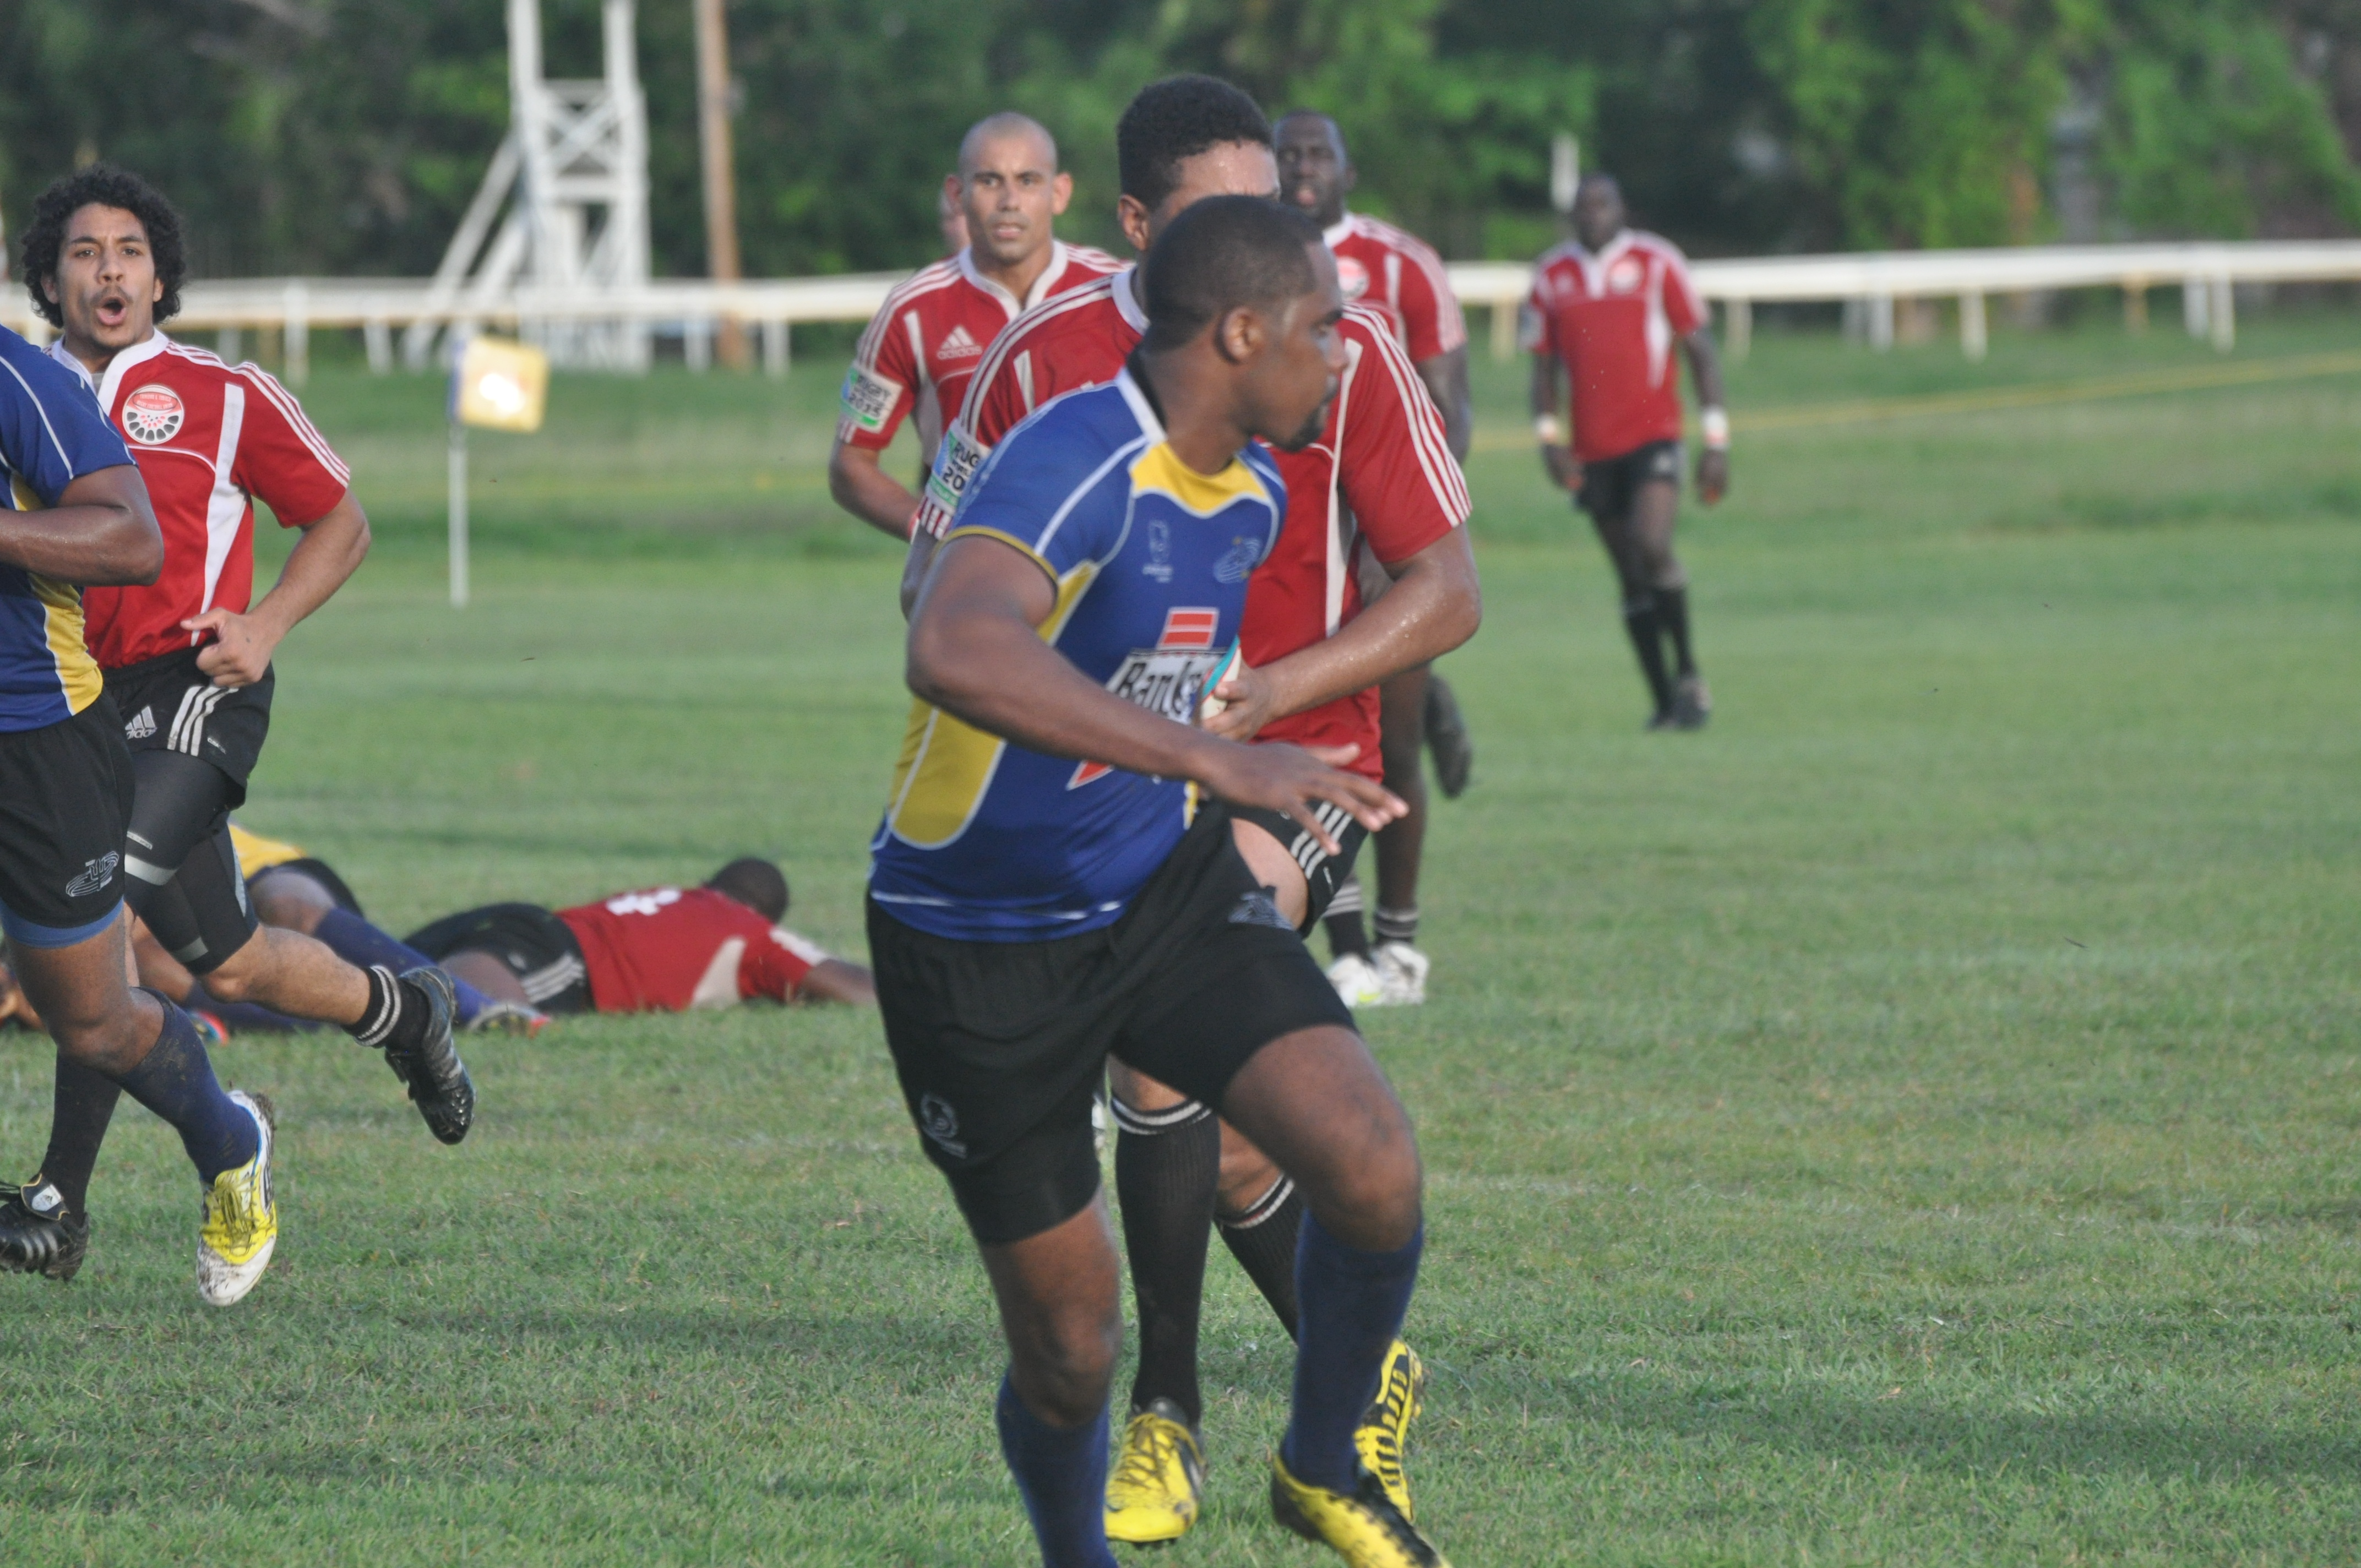 Sporting rugby